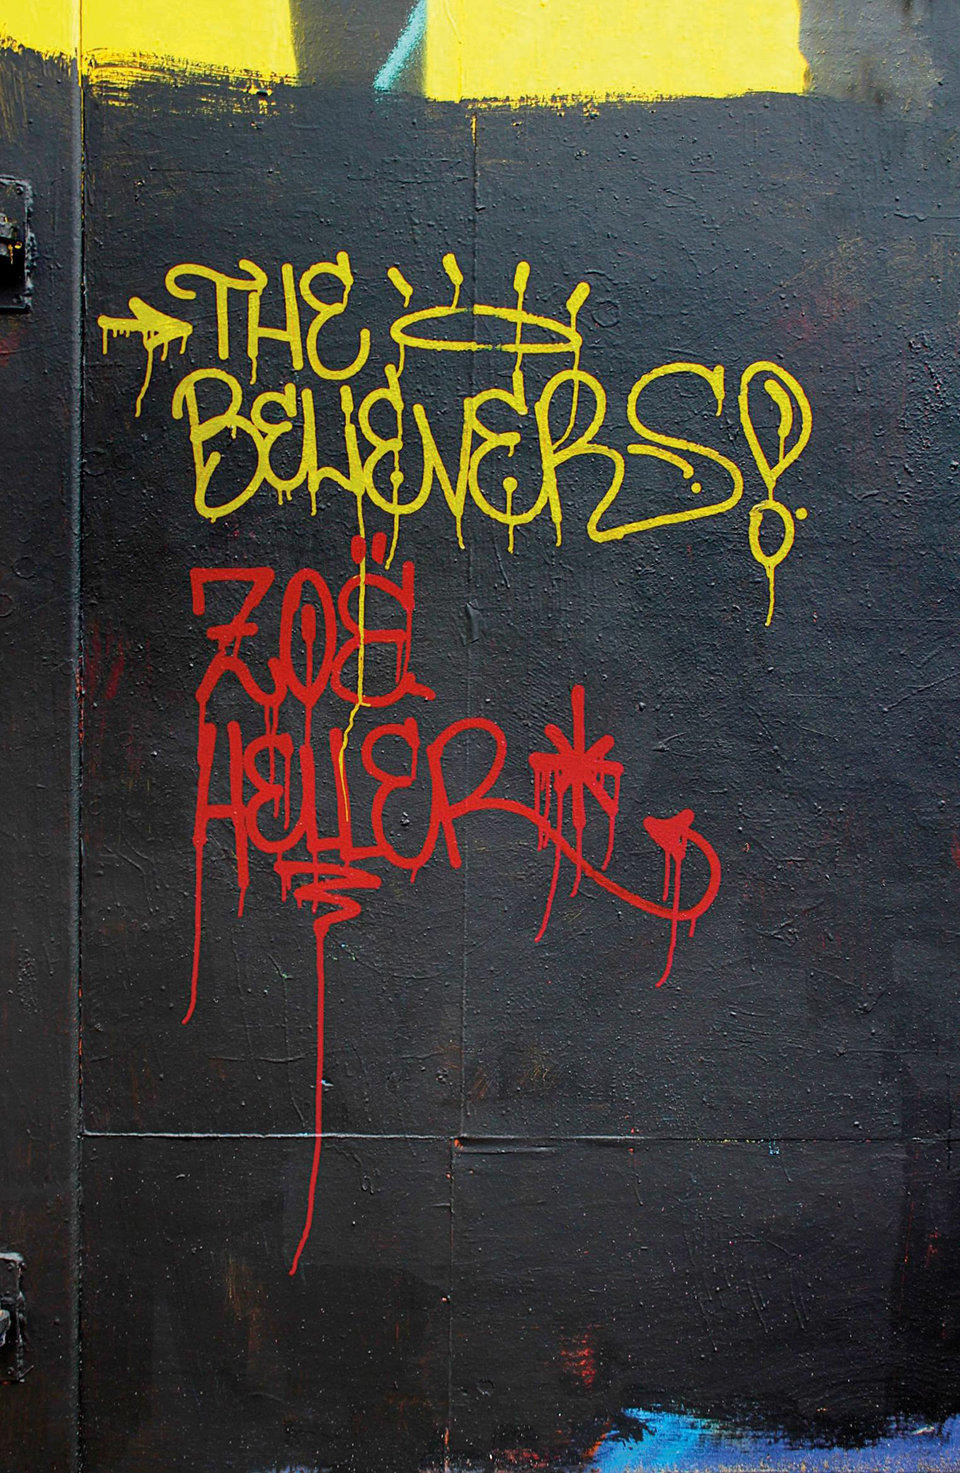 The Believers (Zoe Heller) - Artista: Sickboy